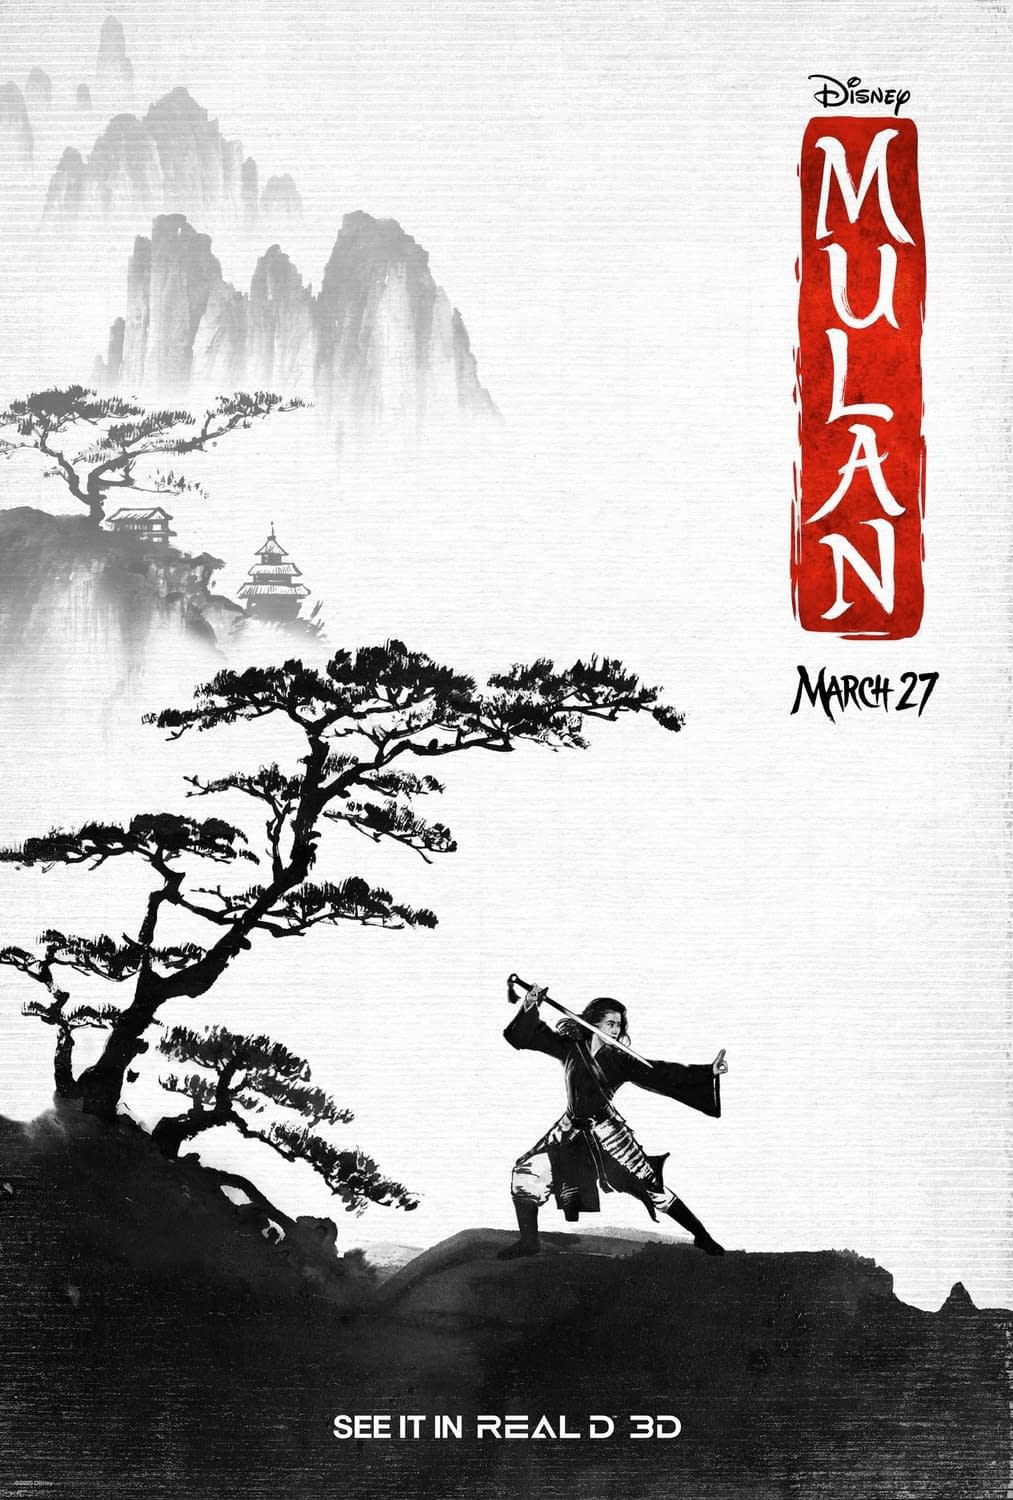 """Mulan"": 3 New Posters and a New TV Spot as Tickets Go On Sale"